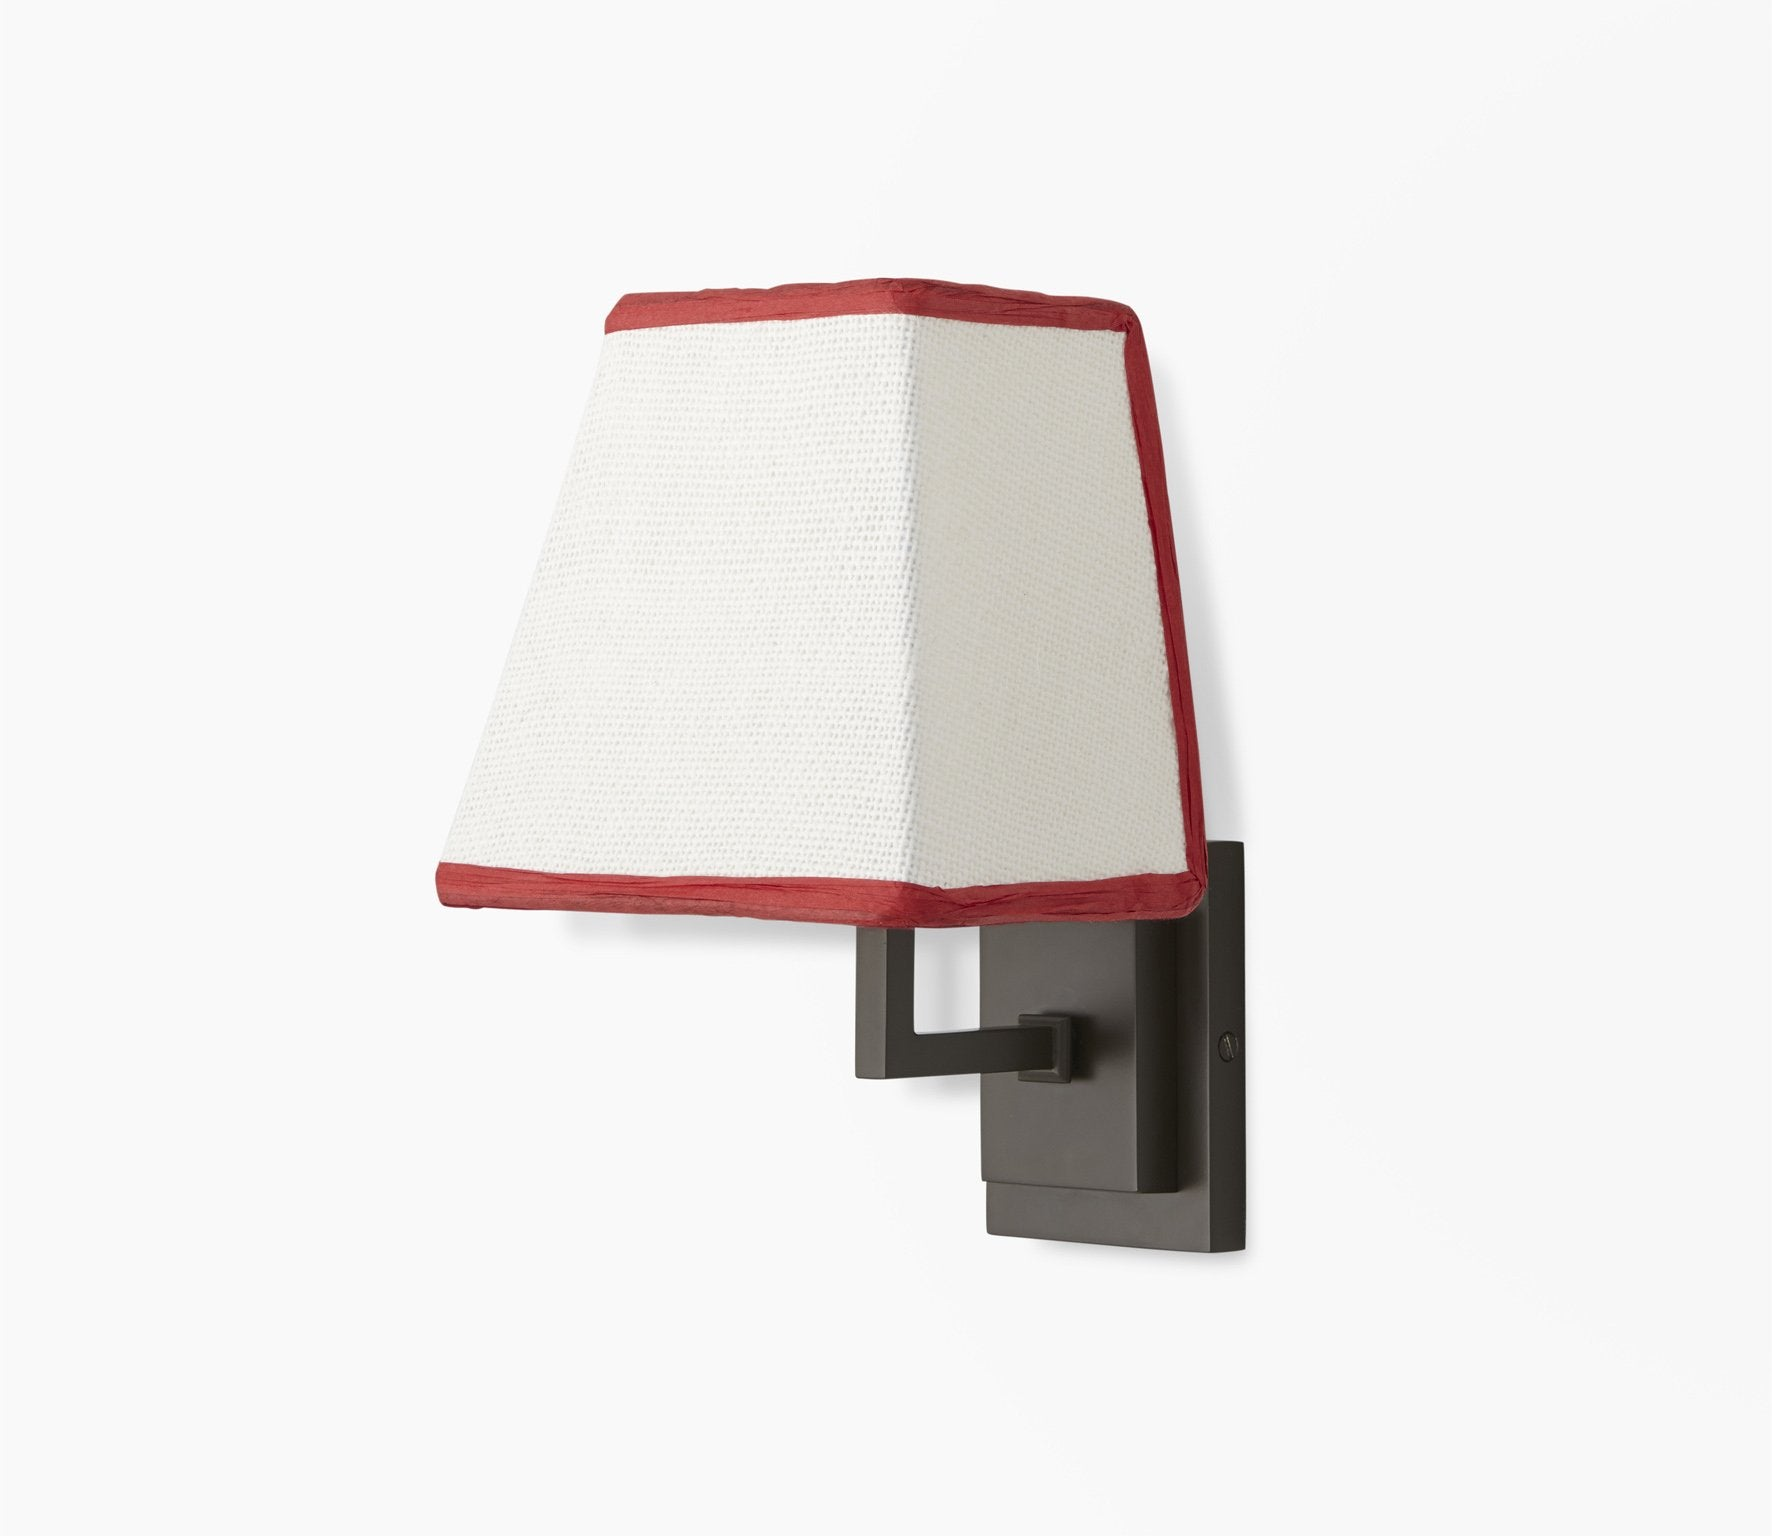 Parker Wall Light with Trapezoid Shade Product Image 3